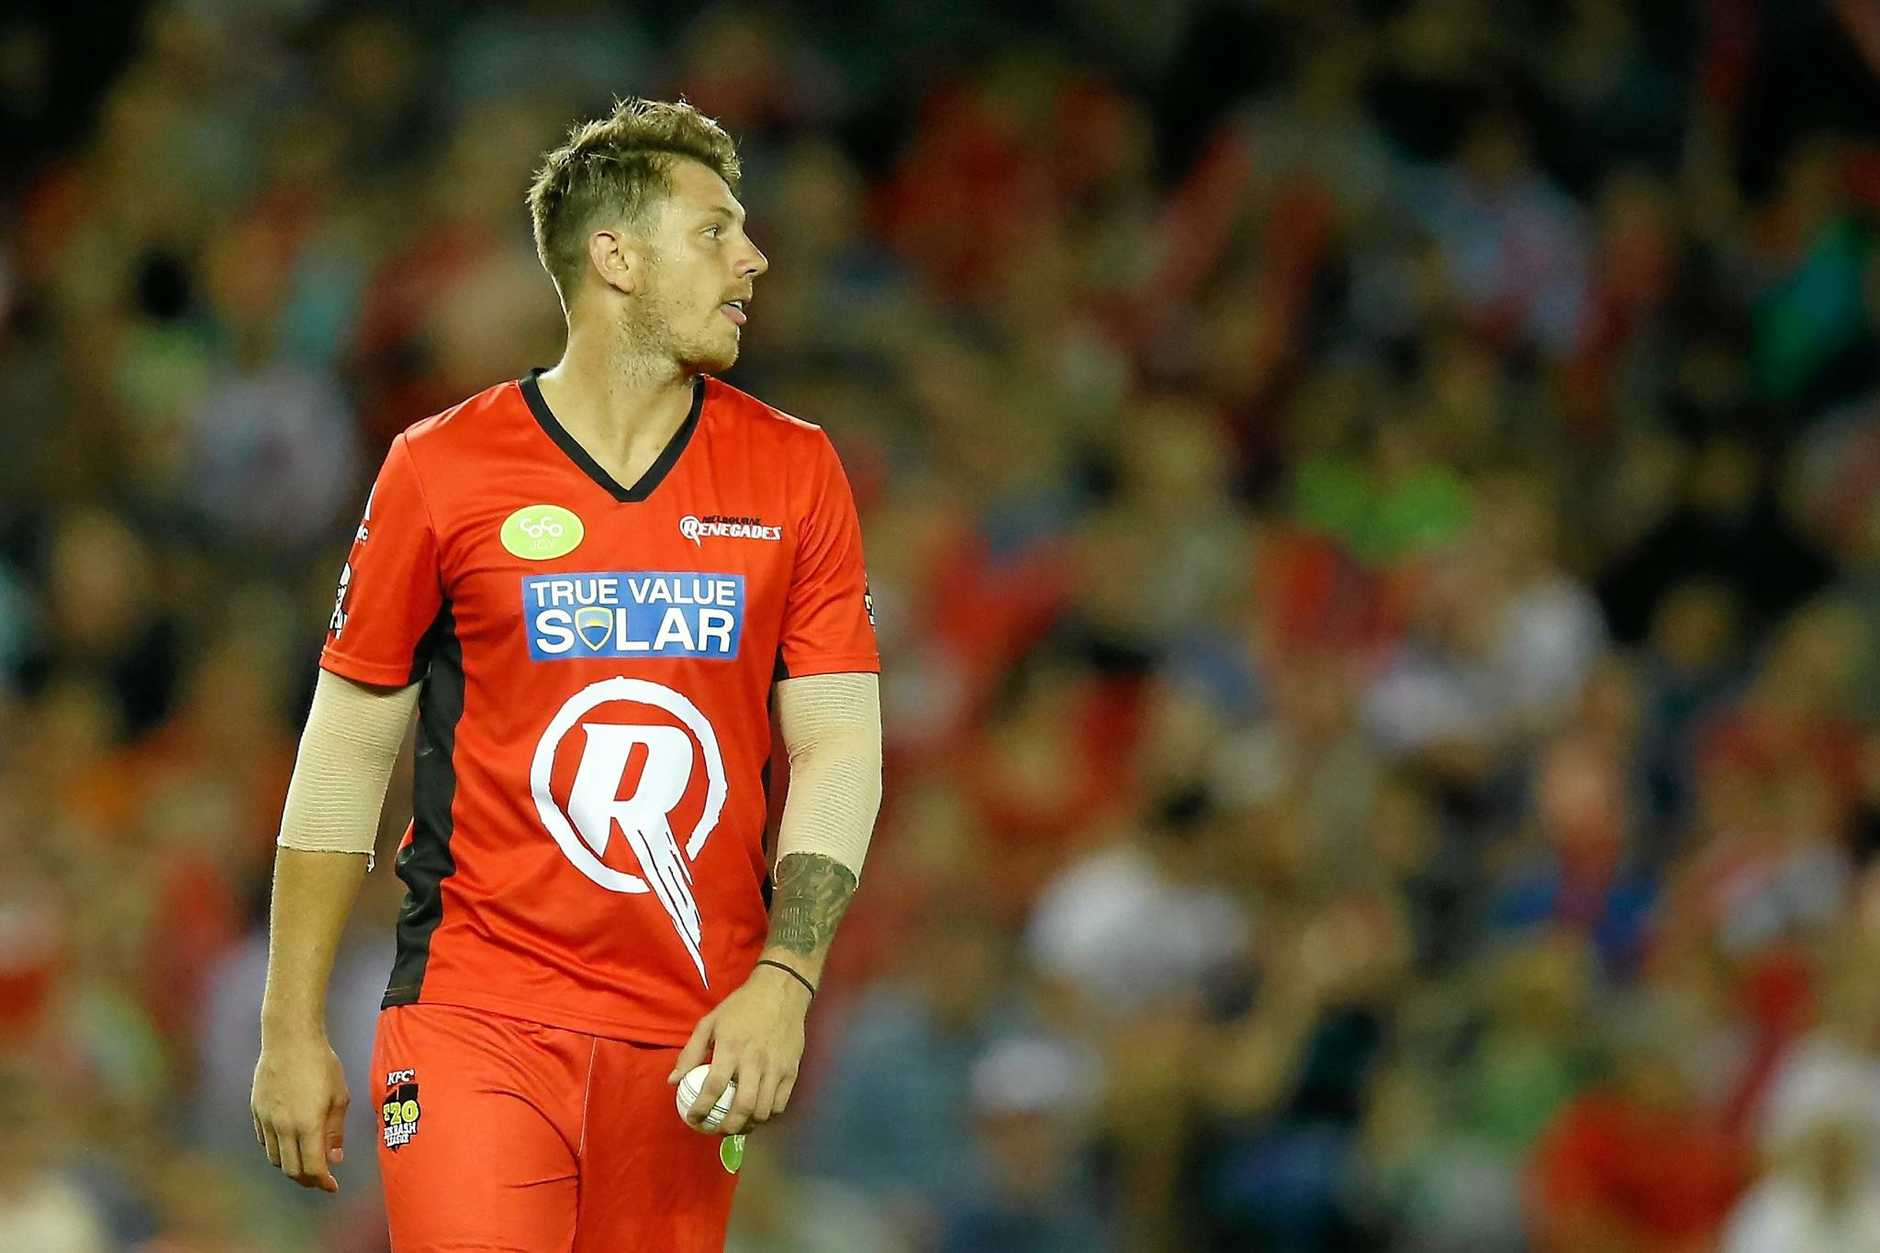 James Pattinson ready to send one down for the Melbourne Renegades.